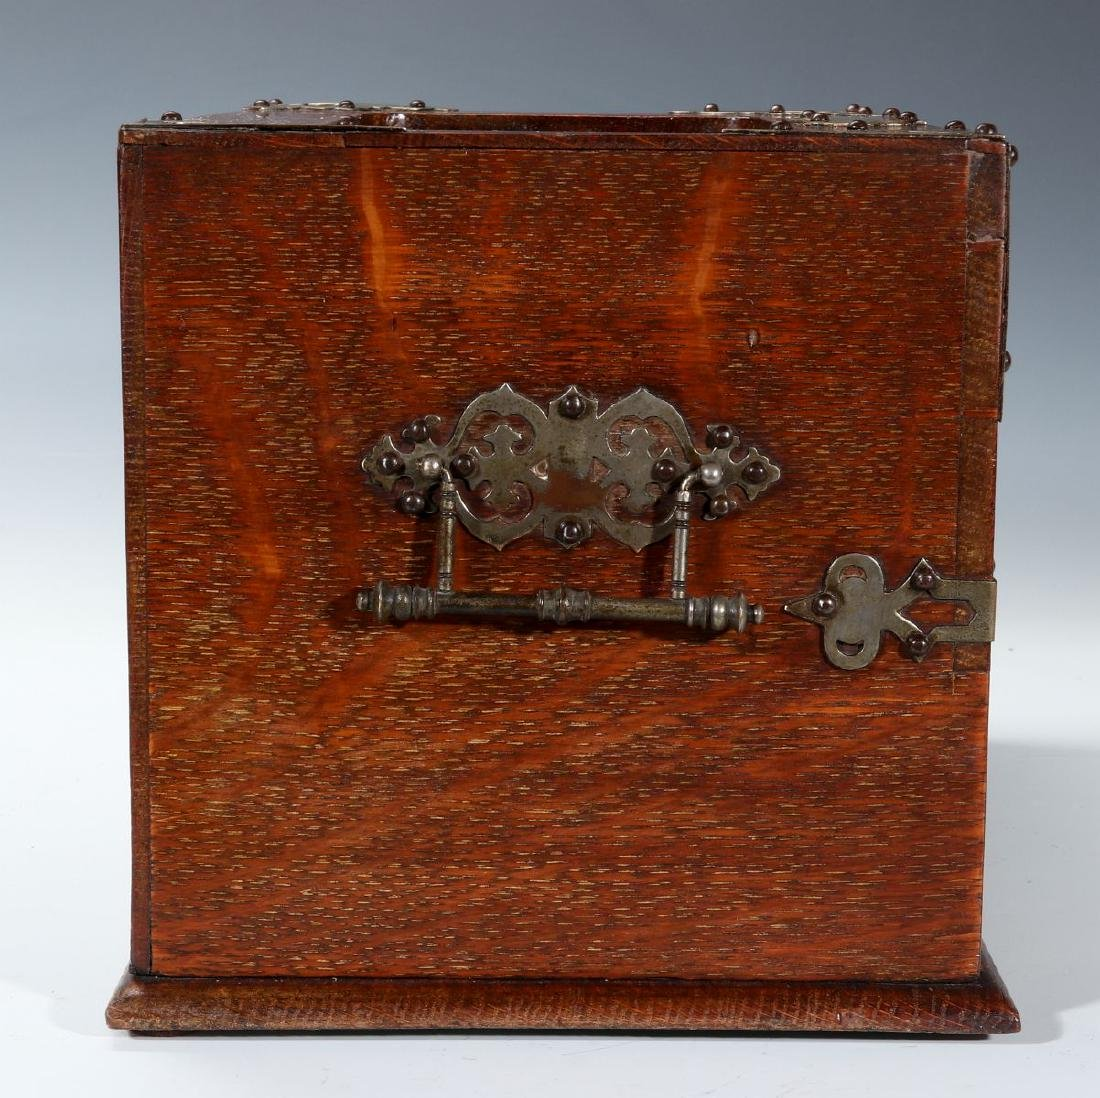 A NICKEL BOUND ENGLISH OAK STATIONARY BOX C 1890 - 4